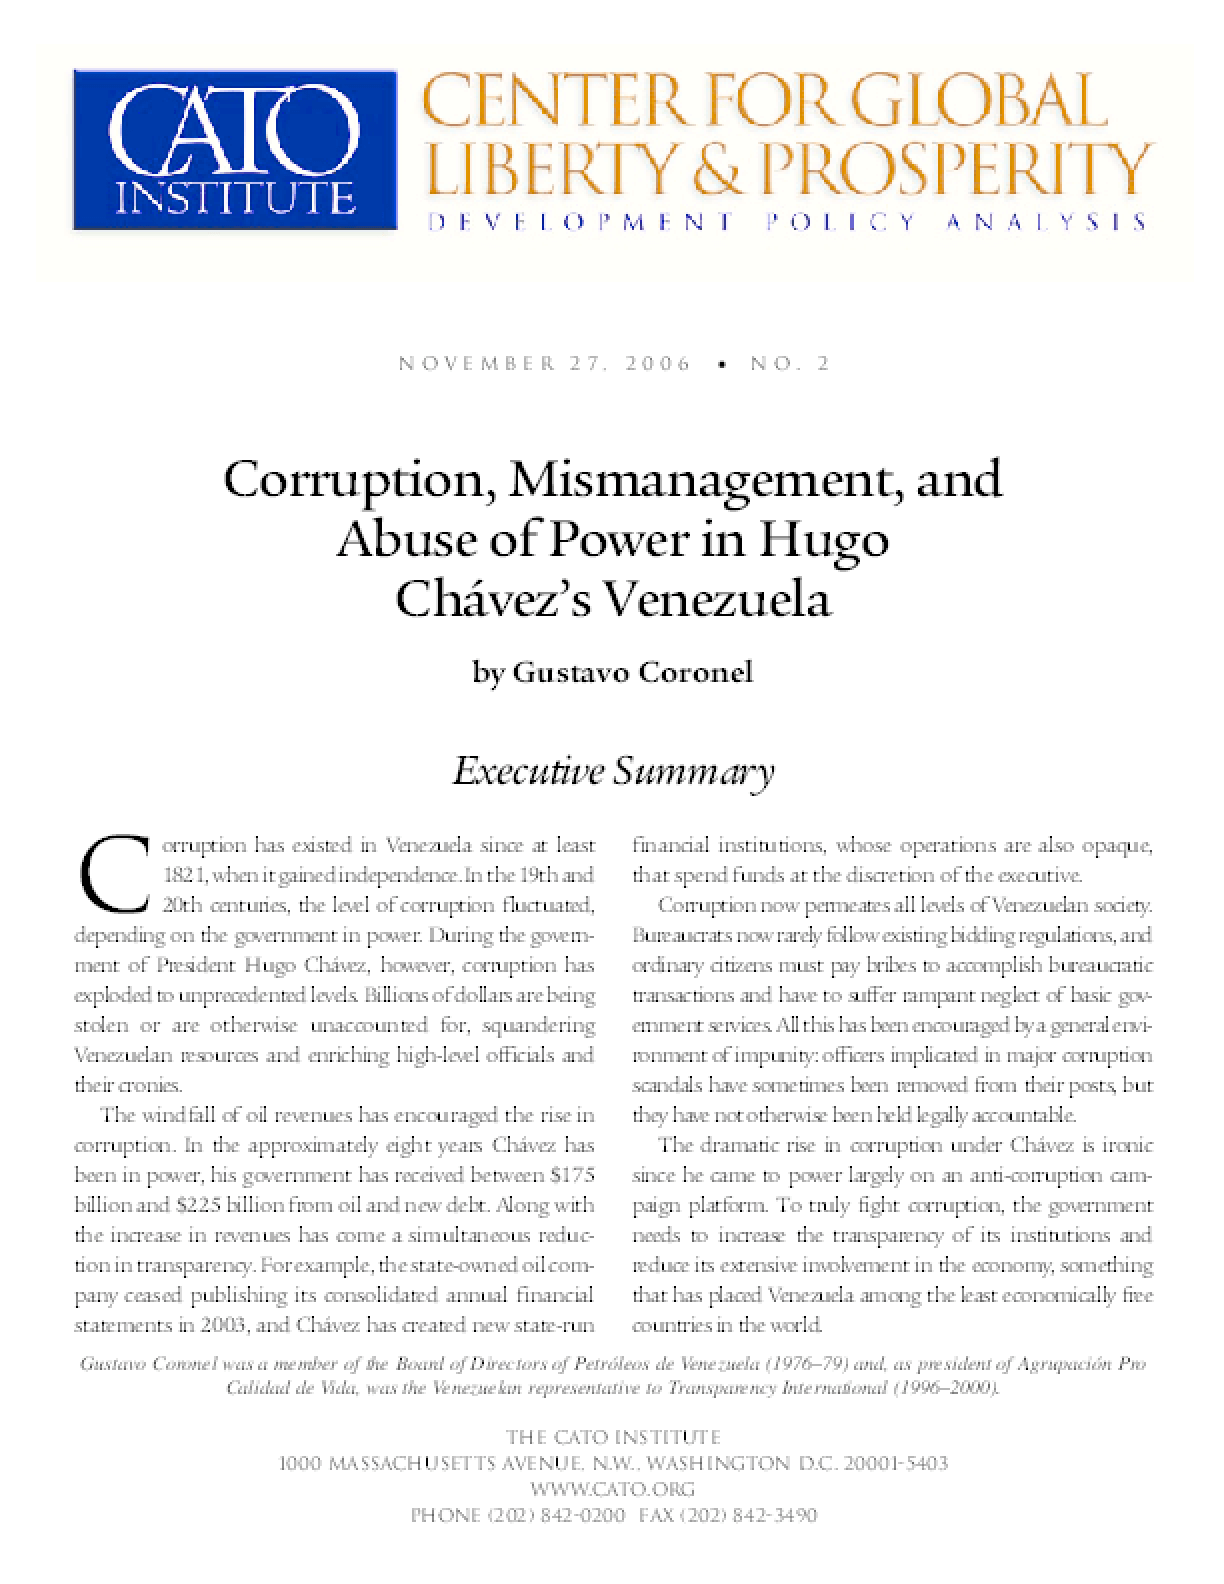 Corruption, Mismanagement, and Abuse of Power in Hugo Chavez's Venezuela